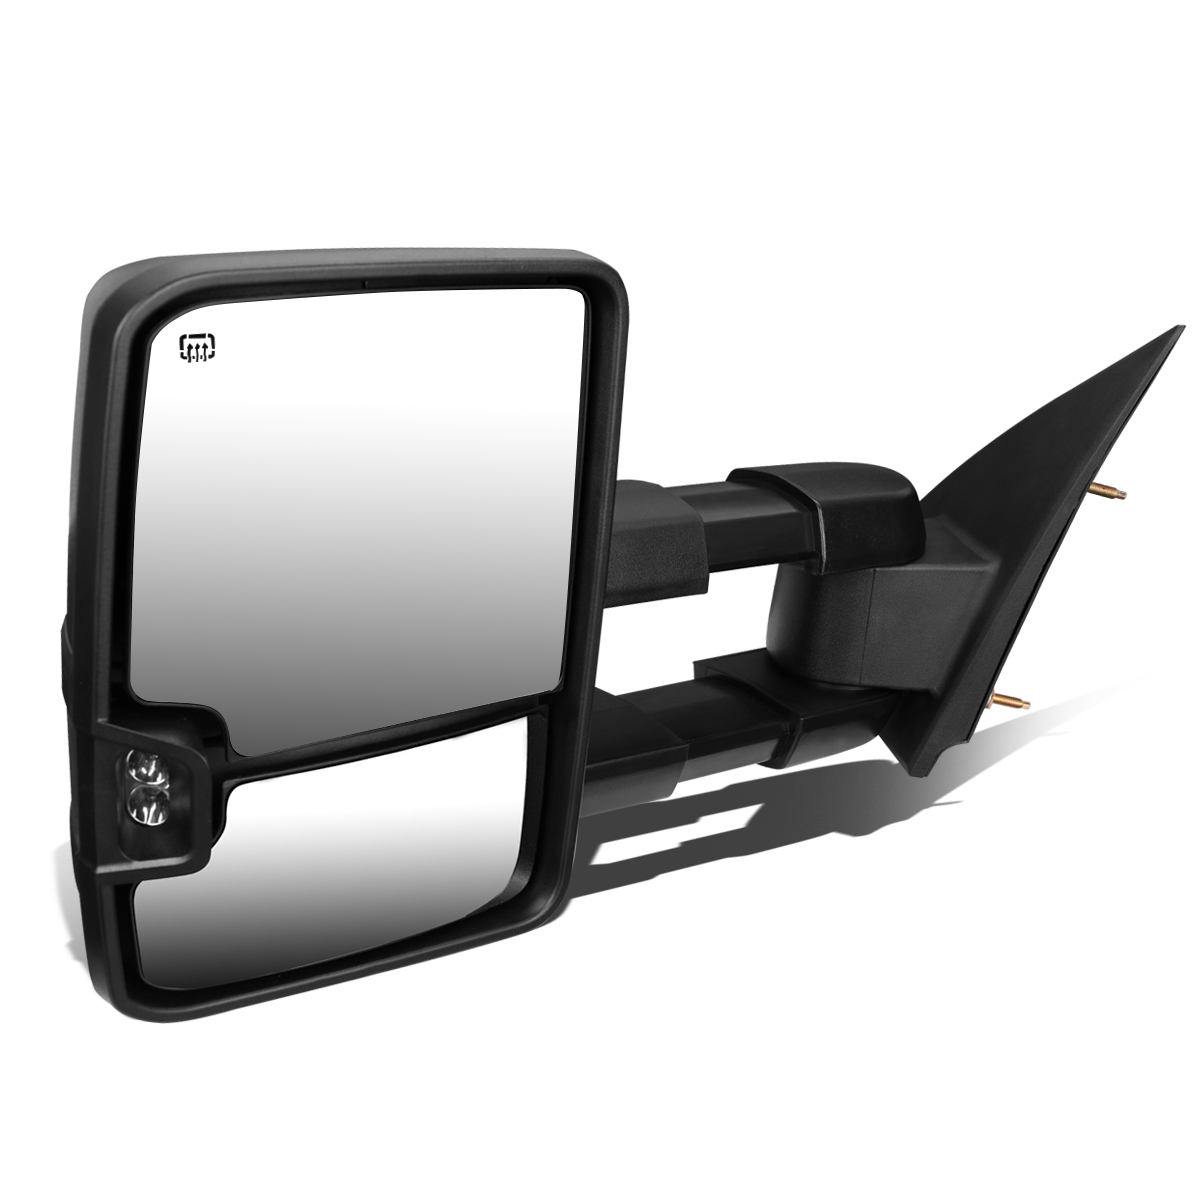 For 2003-2007 Chevy Tahoe/GMC Yukon Powered+Heated+Smoked LED Turn Signal Towing Mirror (Left/Driver)